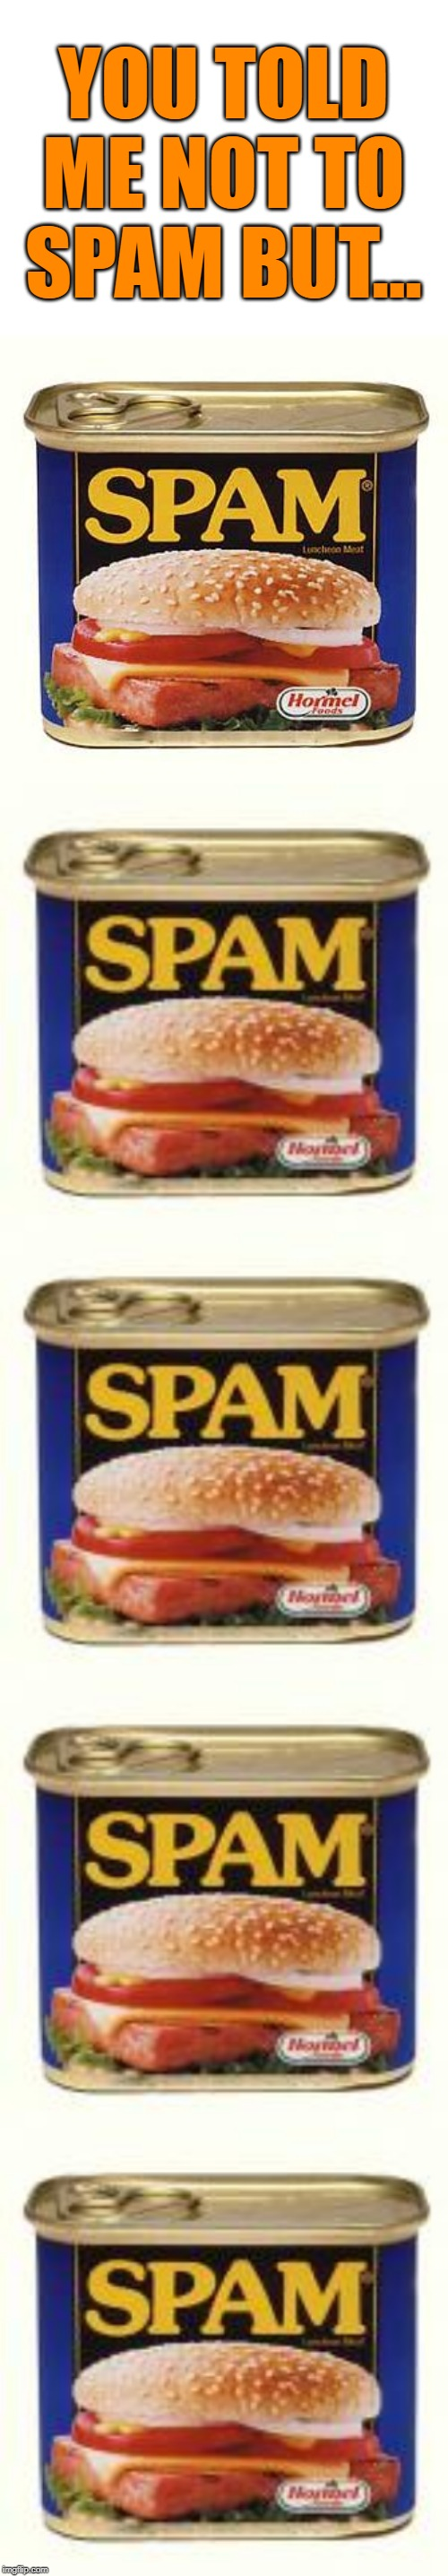 YOU TOLD ME NOT TO SPAM BUT... | image tagged in spam,can,funny | made w/ Imgflip meme maker